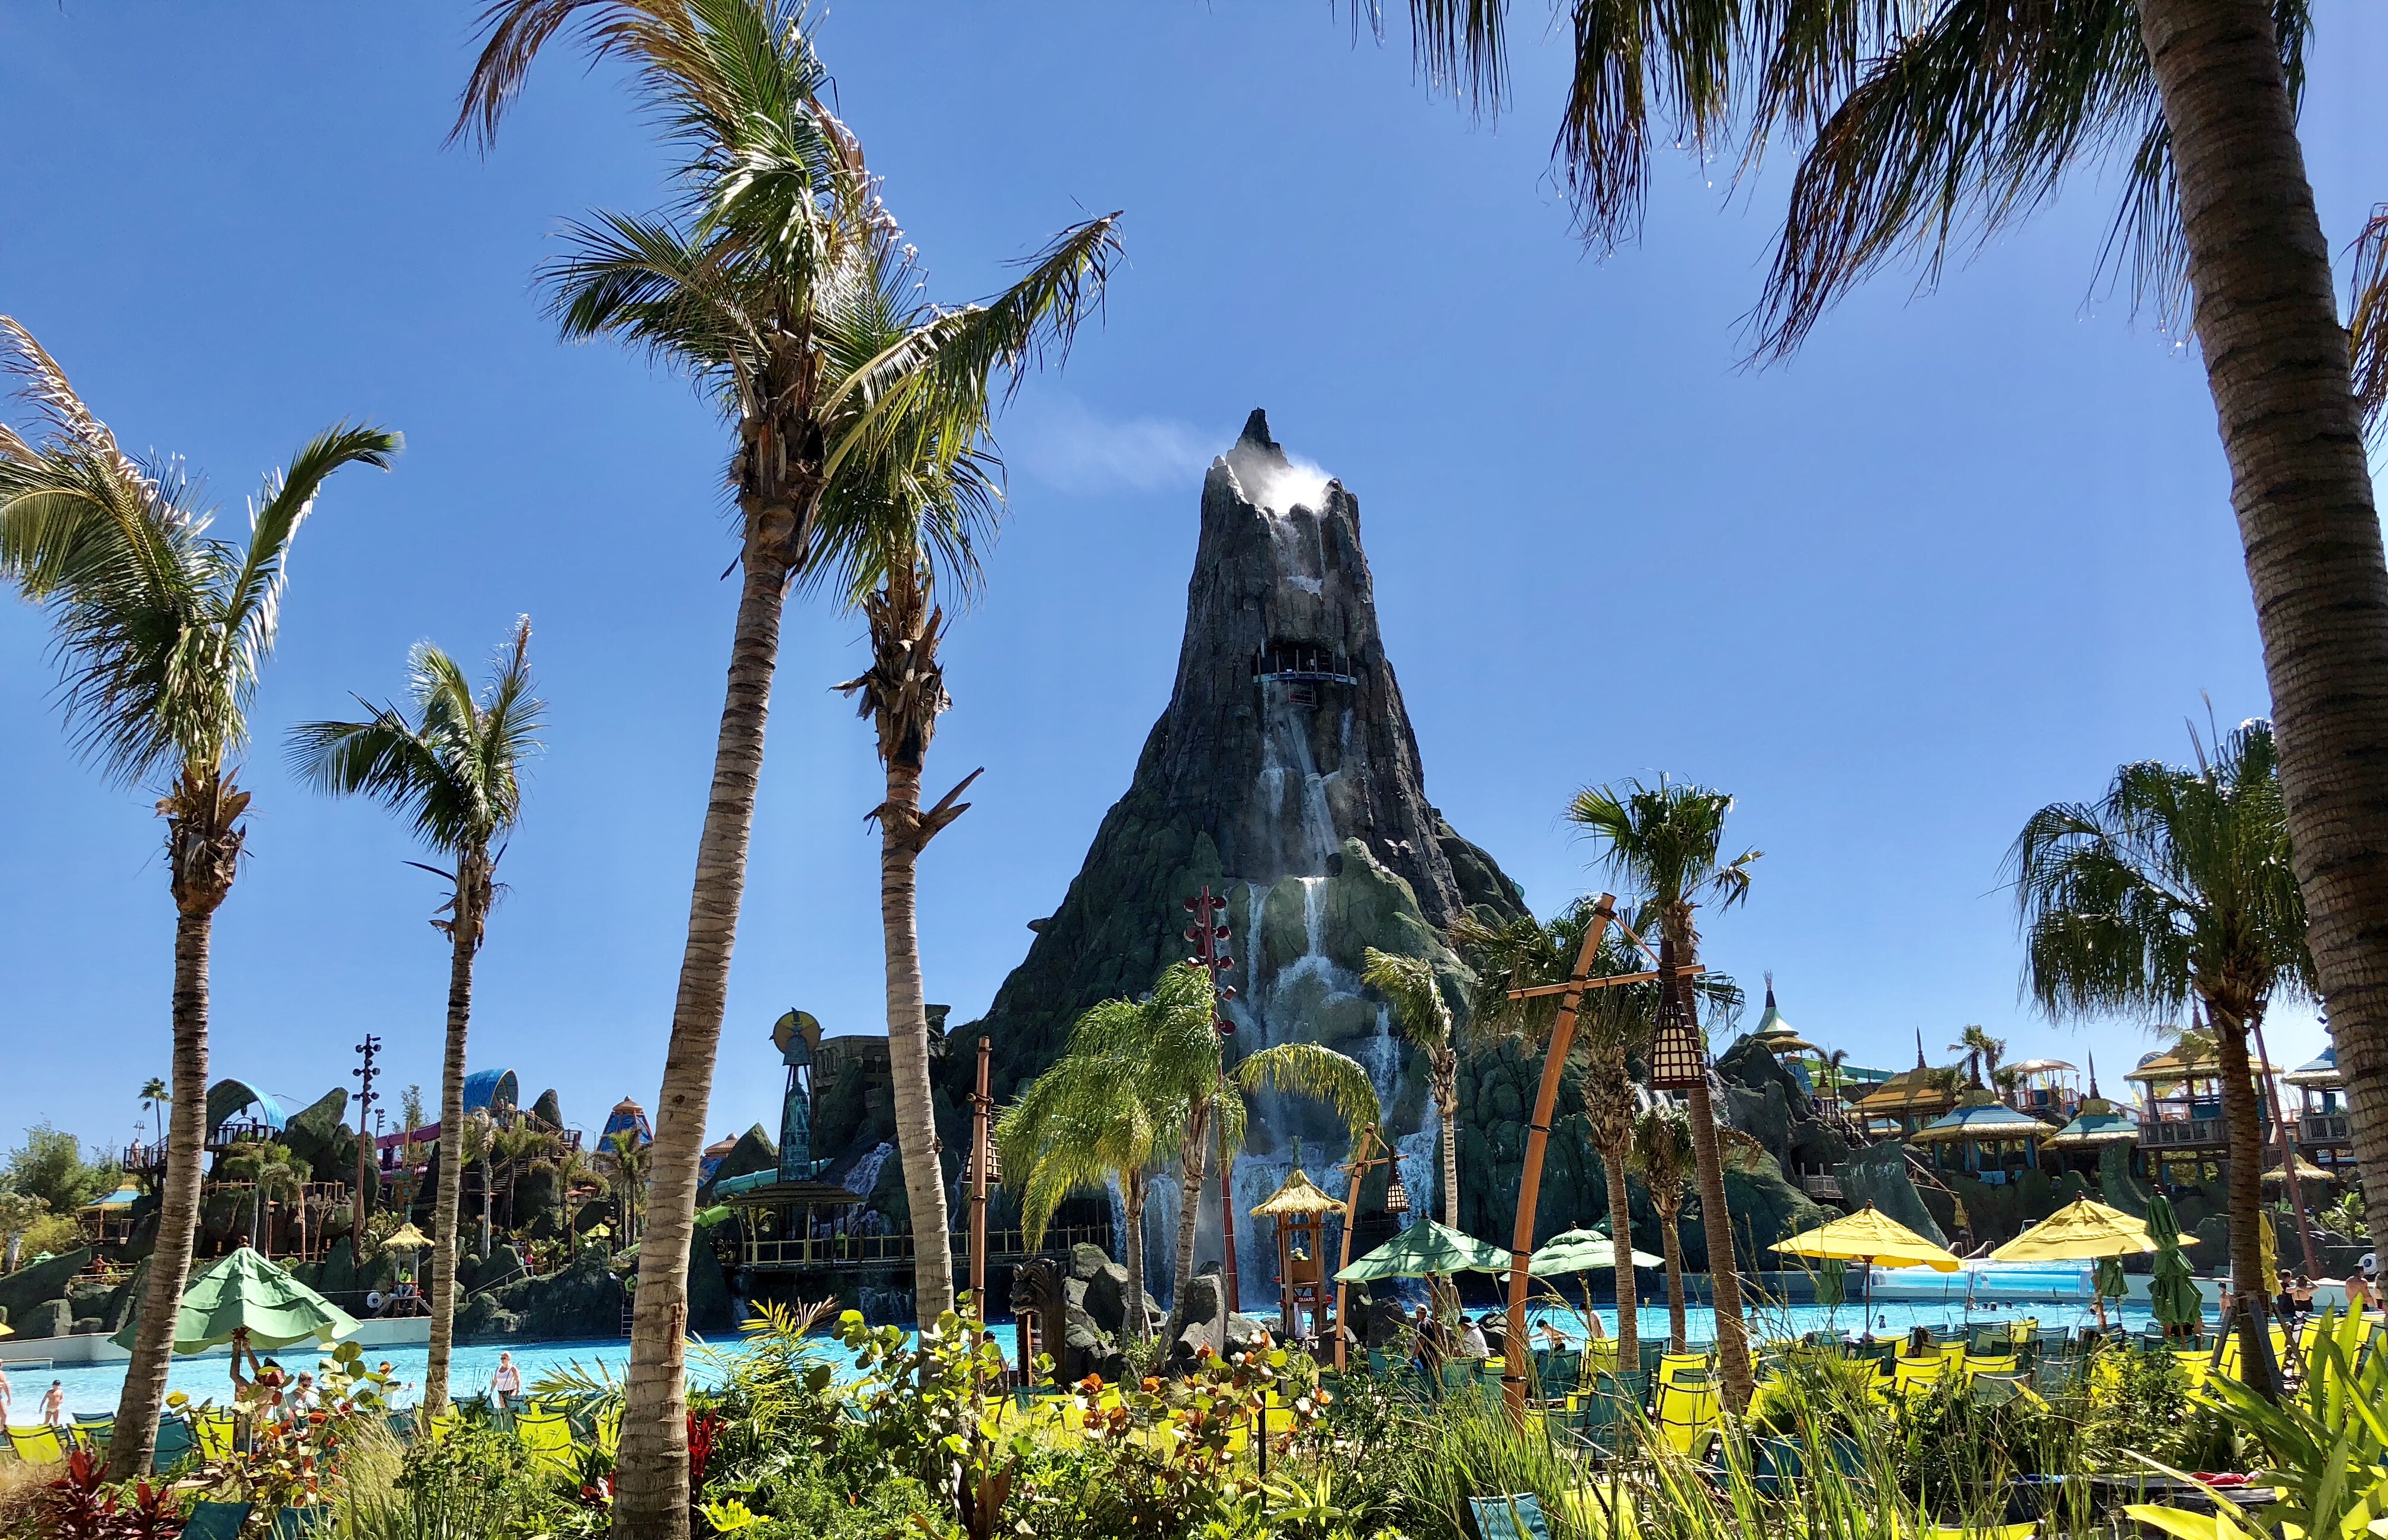 Our Incredible Day at Volcano Bay!